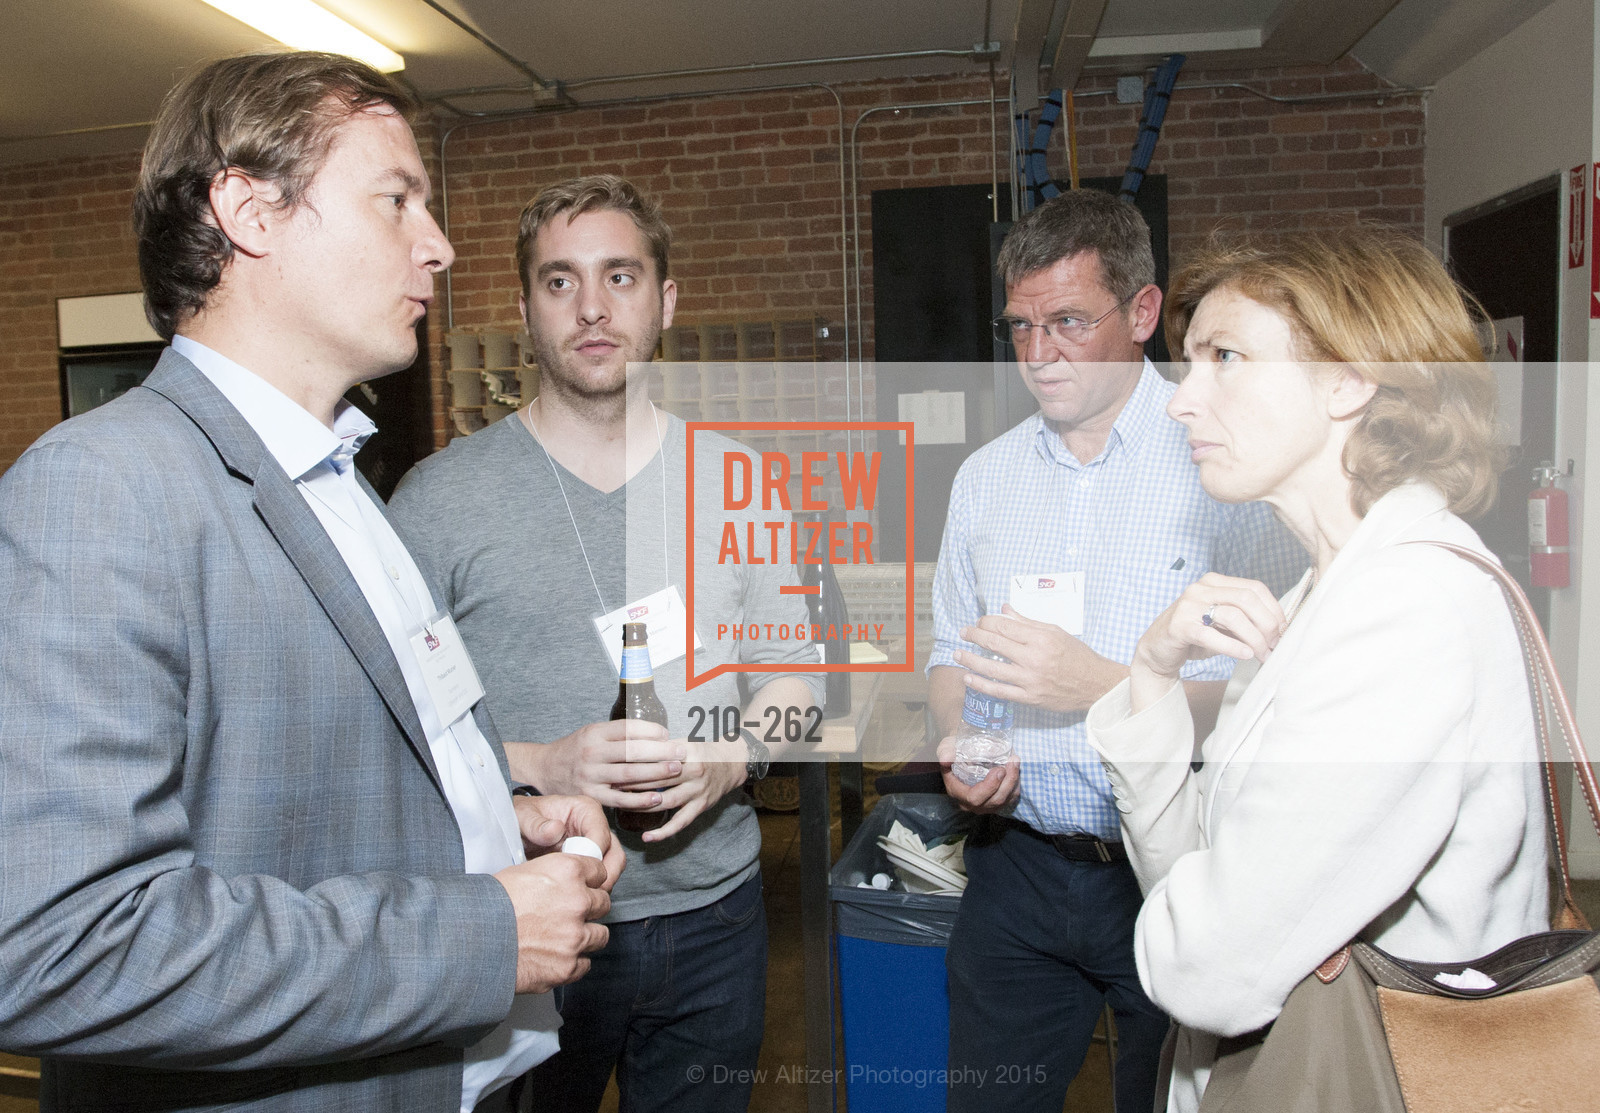 Thibaut Munier, Baptiste Manson, Ivan Ollivier, Florence Parly, Inauguration of SNCF Innovation Lab, 169 11th St, August 26th, 2015,Drew Altizer, Drew Altizer Photography, full-service agency, private events, San Francisco photographer, photographer california